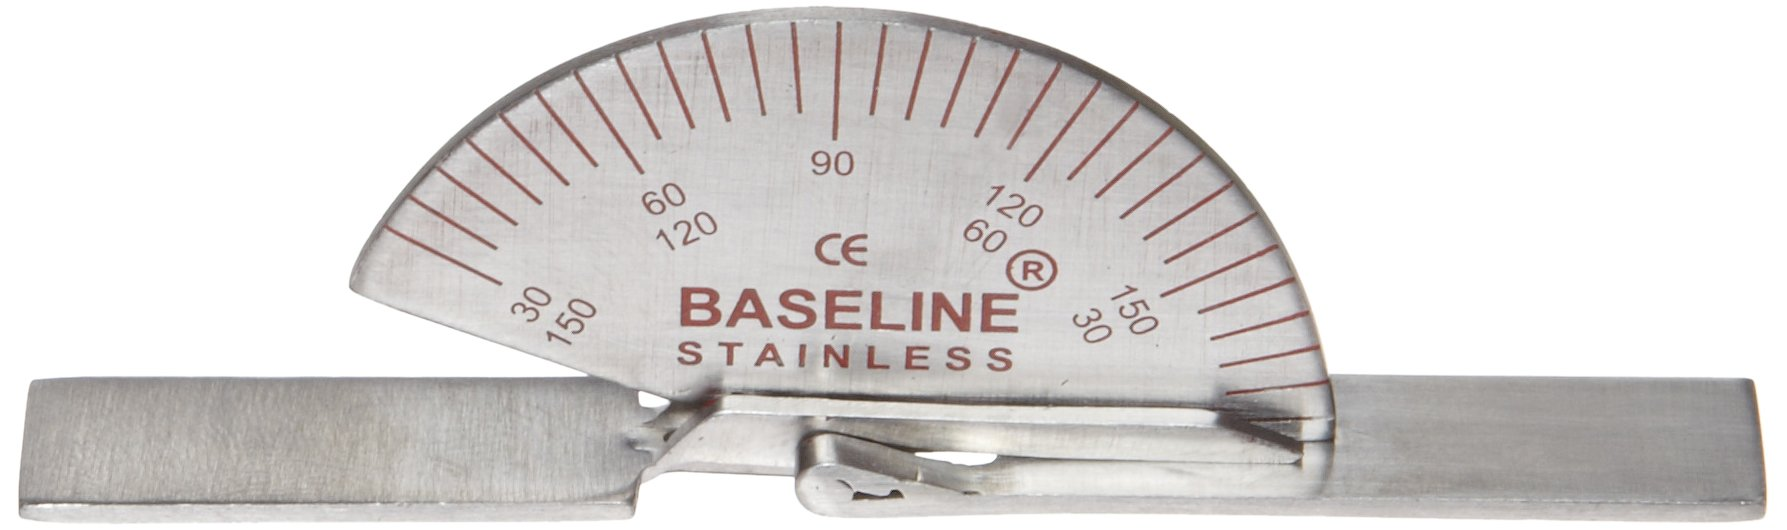 Baseline Stainless Steel Finger Small Joint Goniometer